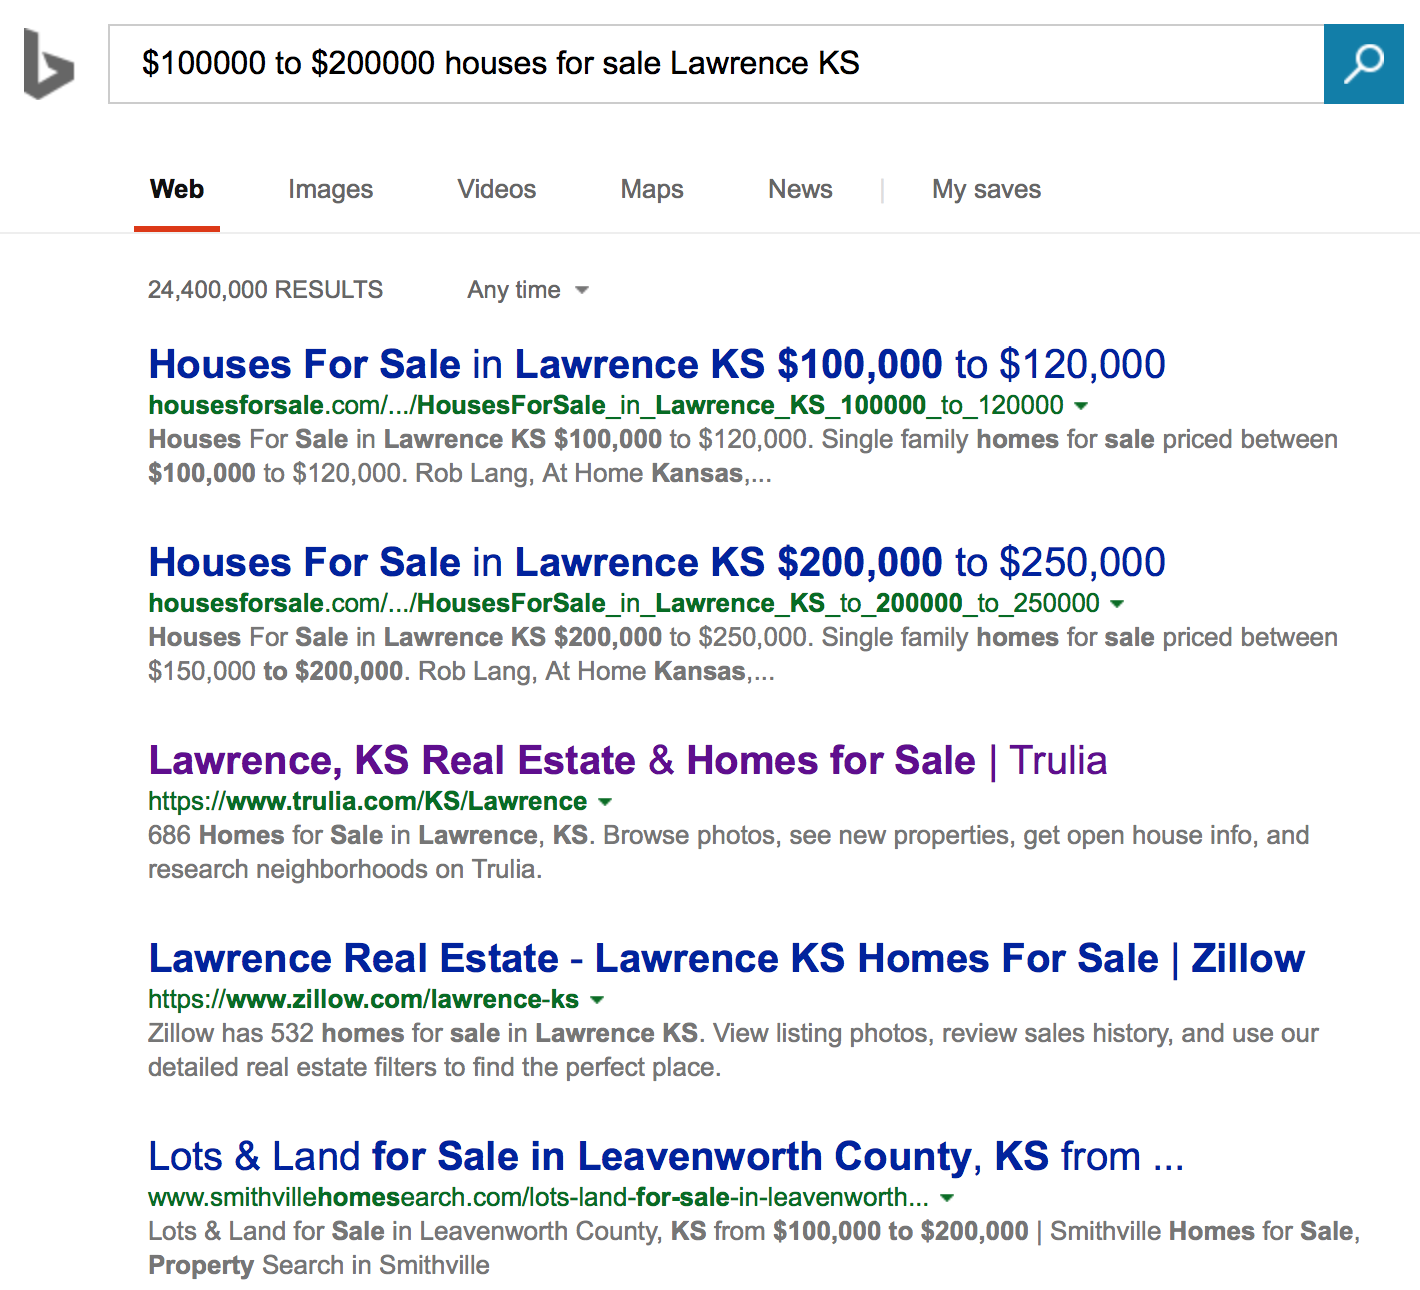 Houses For Sale Number 1 on Bing